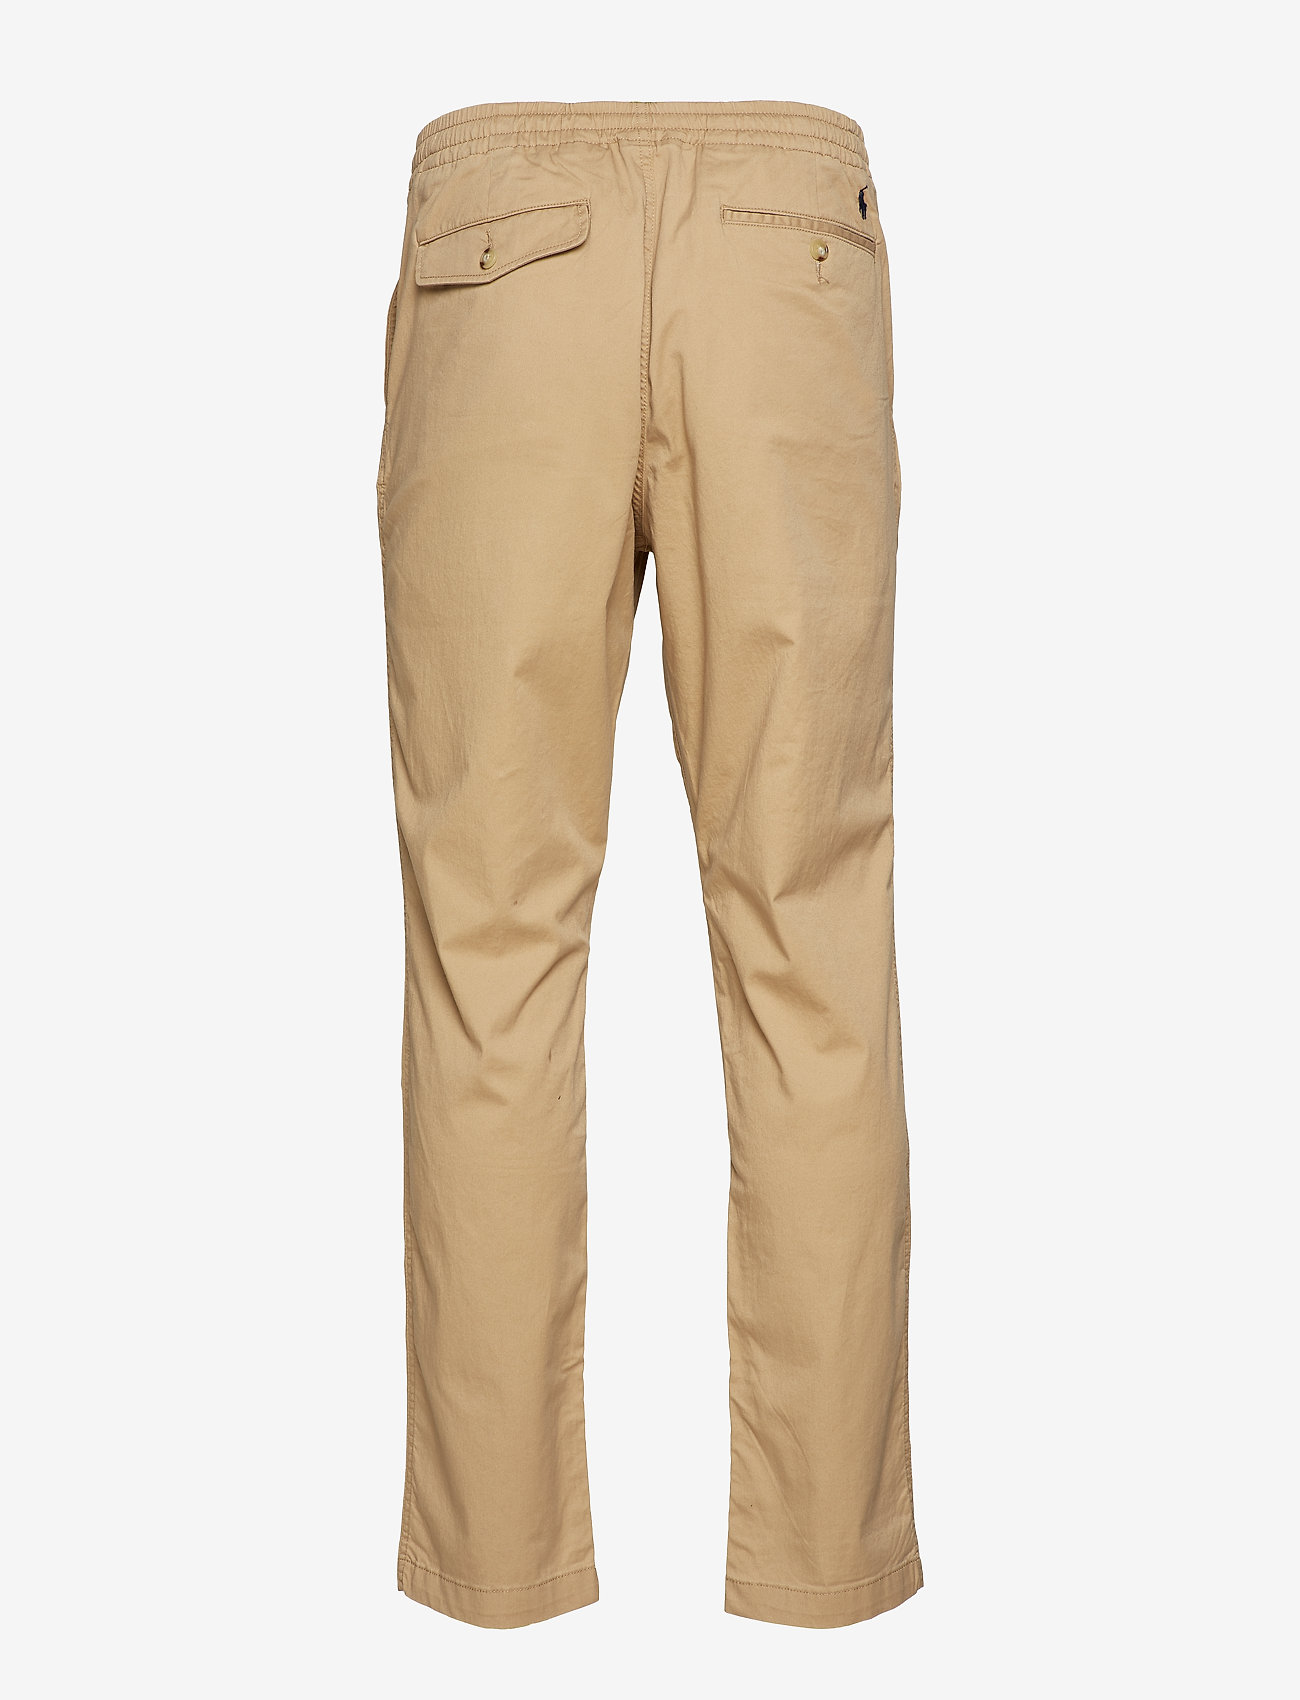 Relaxed Fit Polo Prepster Pant (Luxury Tan) (697.50 kr) - Polo Ralph Lauren